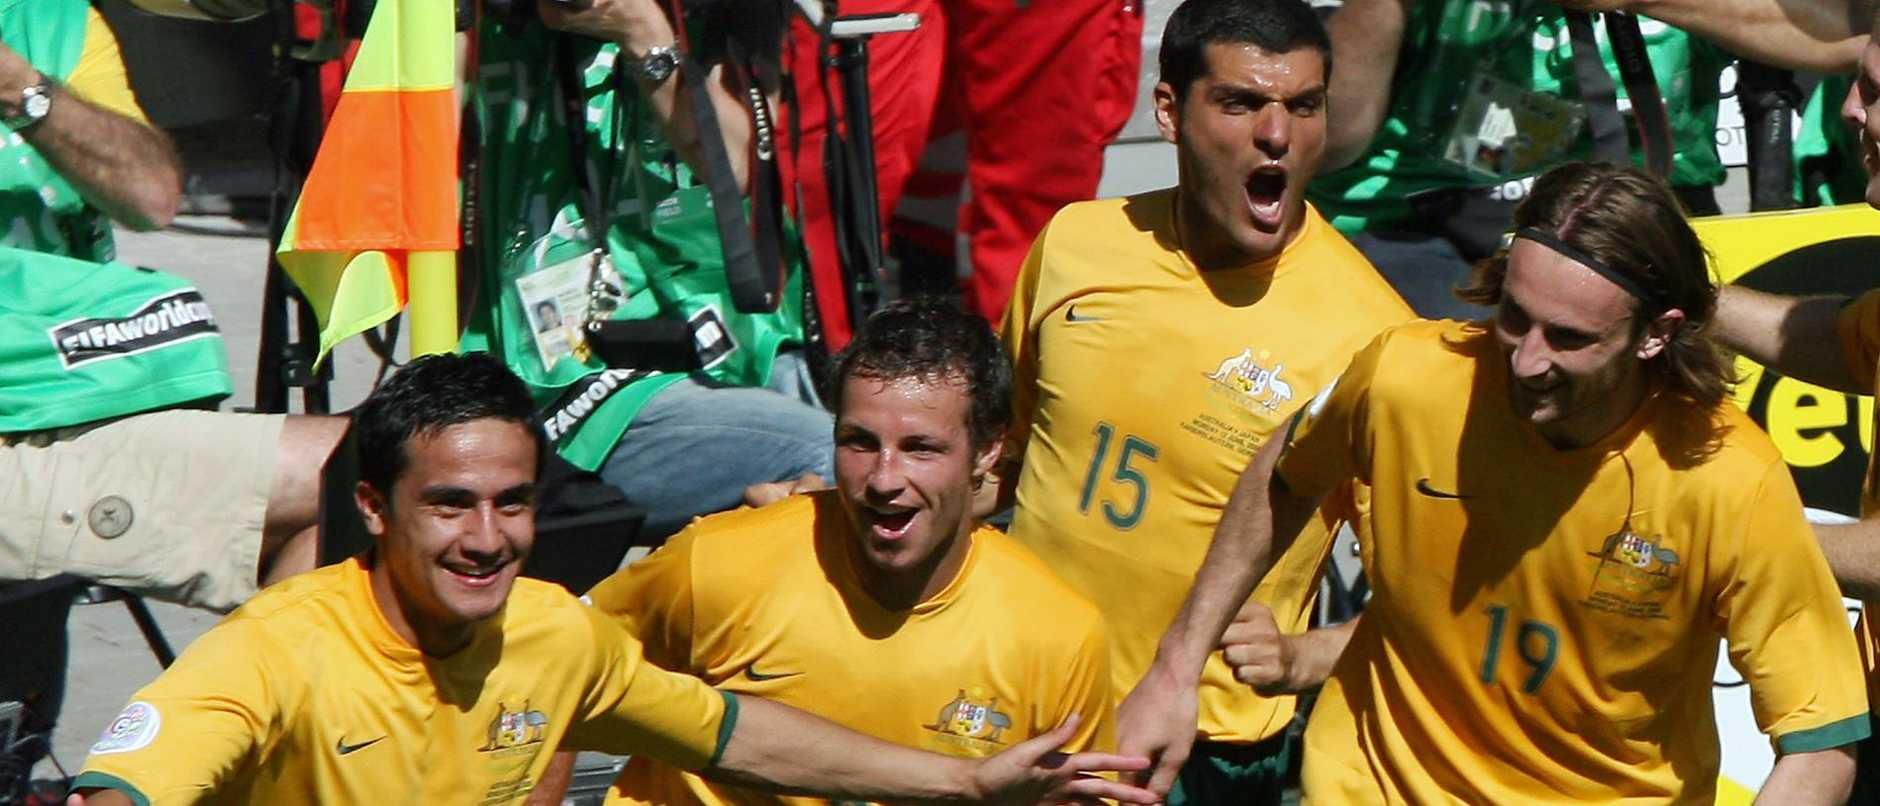 Australian midfielder Tim Cahill (L) celebrates with teammates after scoring his second goal against Japan in their first round Group F World Cup football match at Kaiserslautern's Fritz-Walter Stadium, 12 June 2006. Australia won the match 3-1. AFP PHOTO/VALERY HACHE